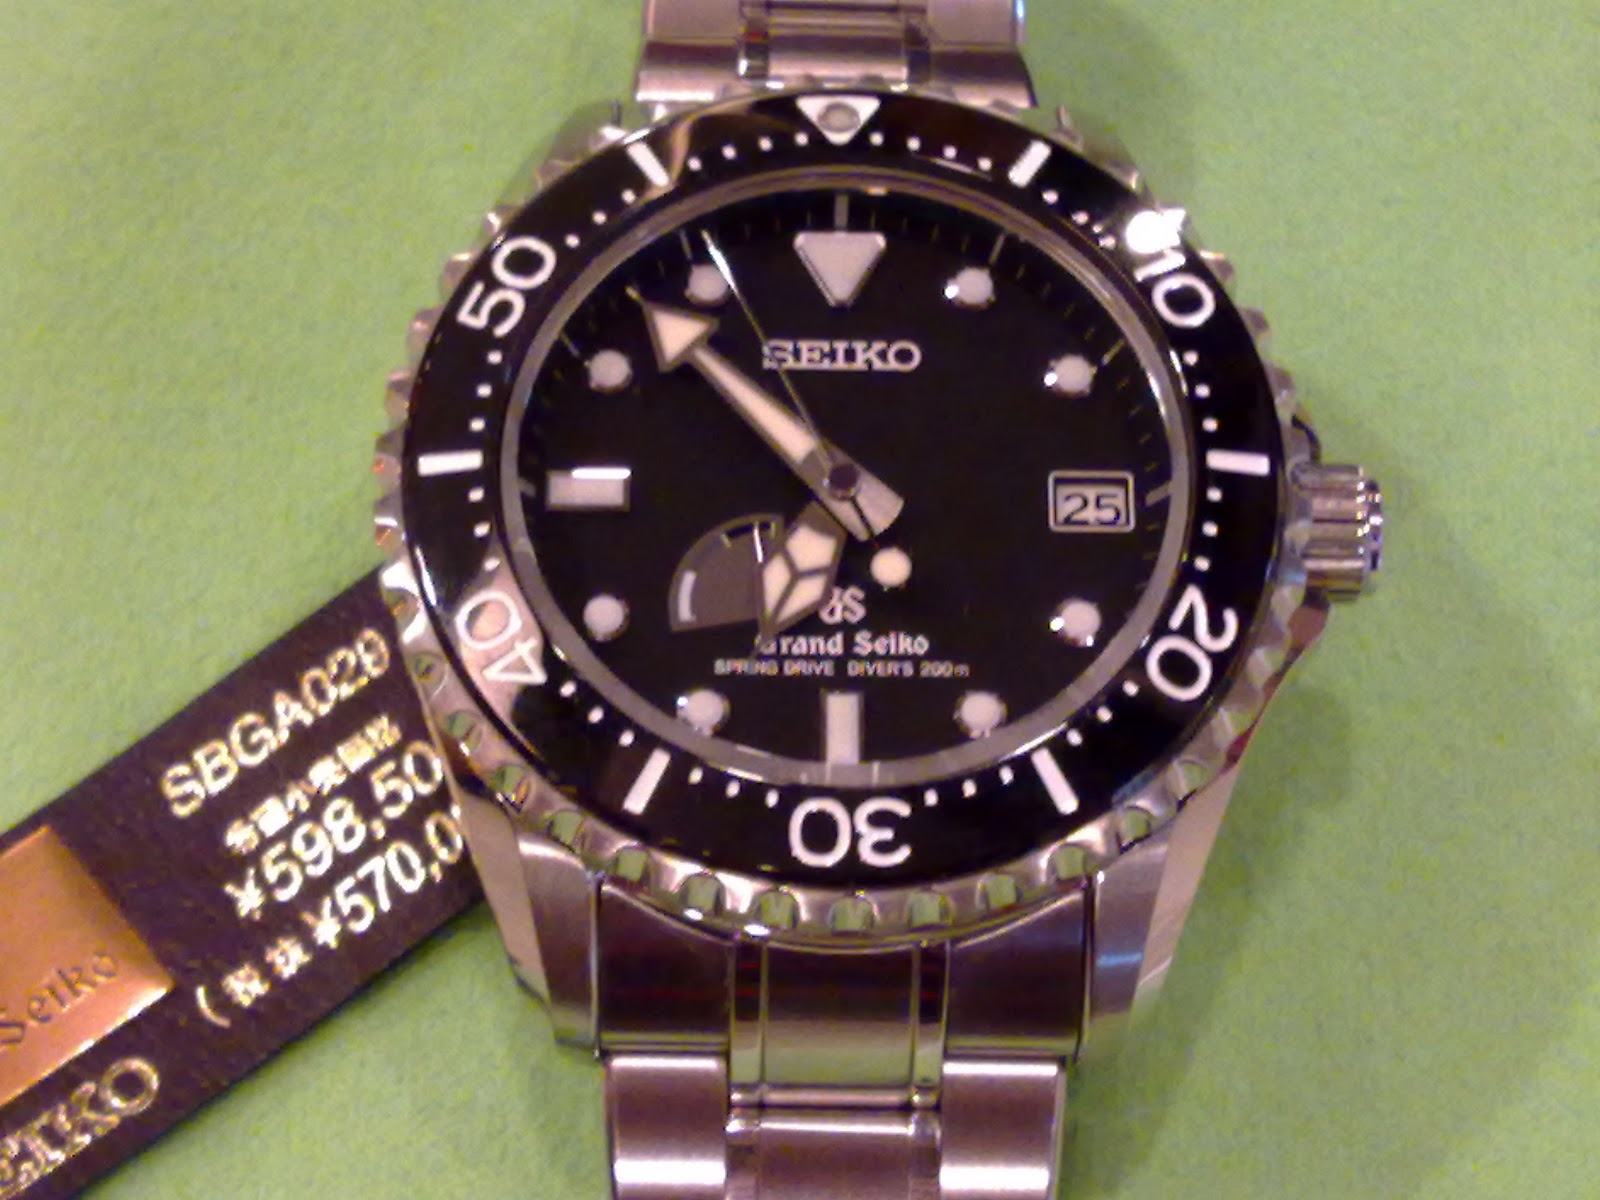 hong kong fever 香港勞友 the most expensive diver s